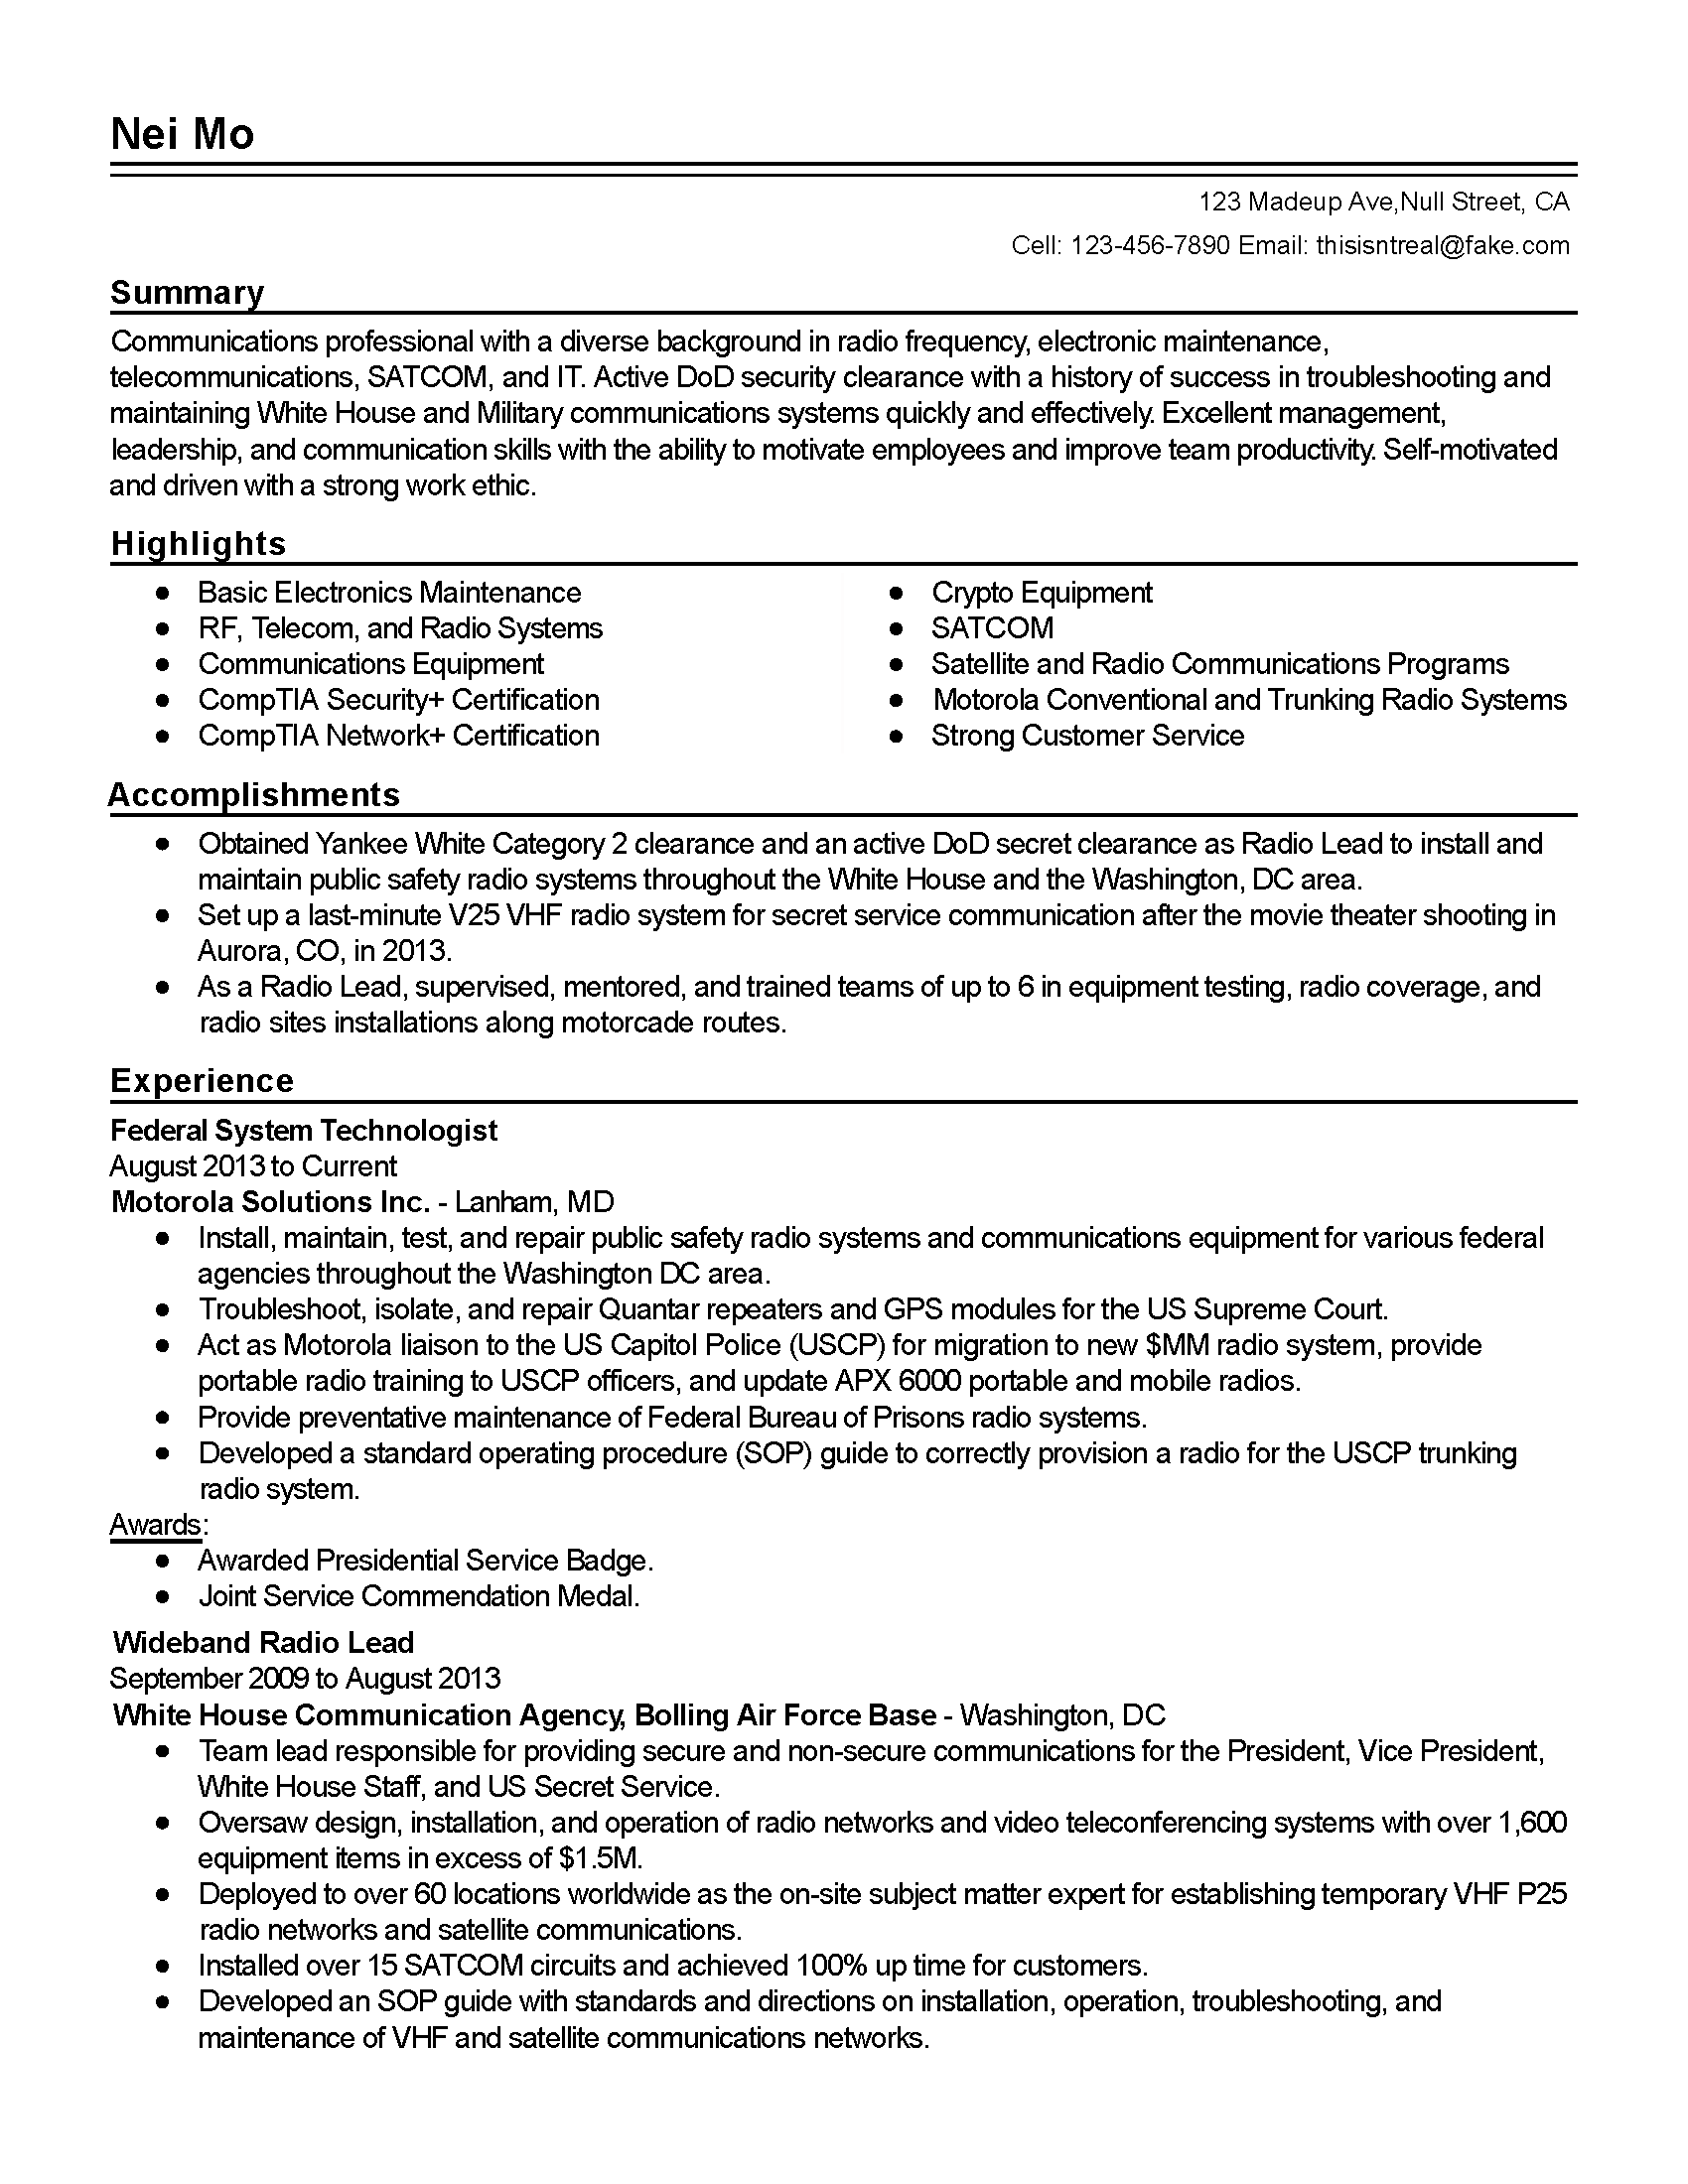 Resume For Telecommunications Technician Professional Federal System Technologist Templates To